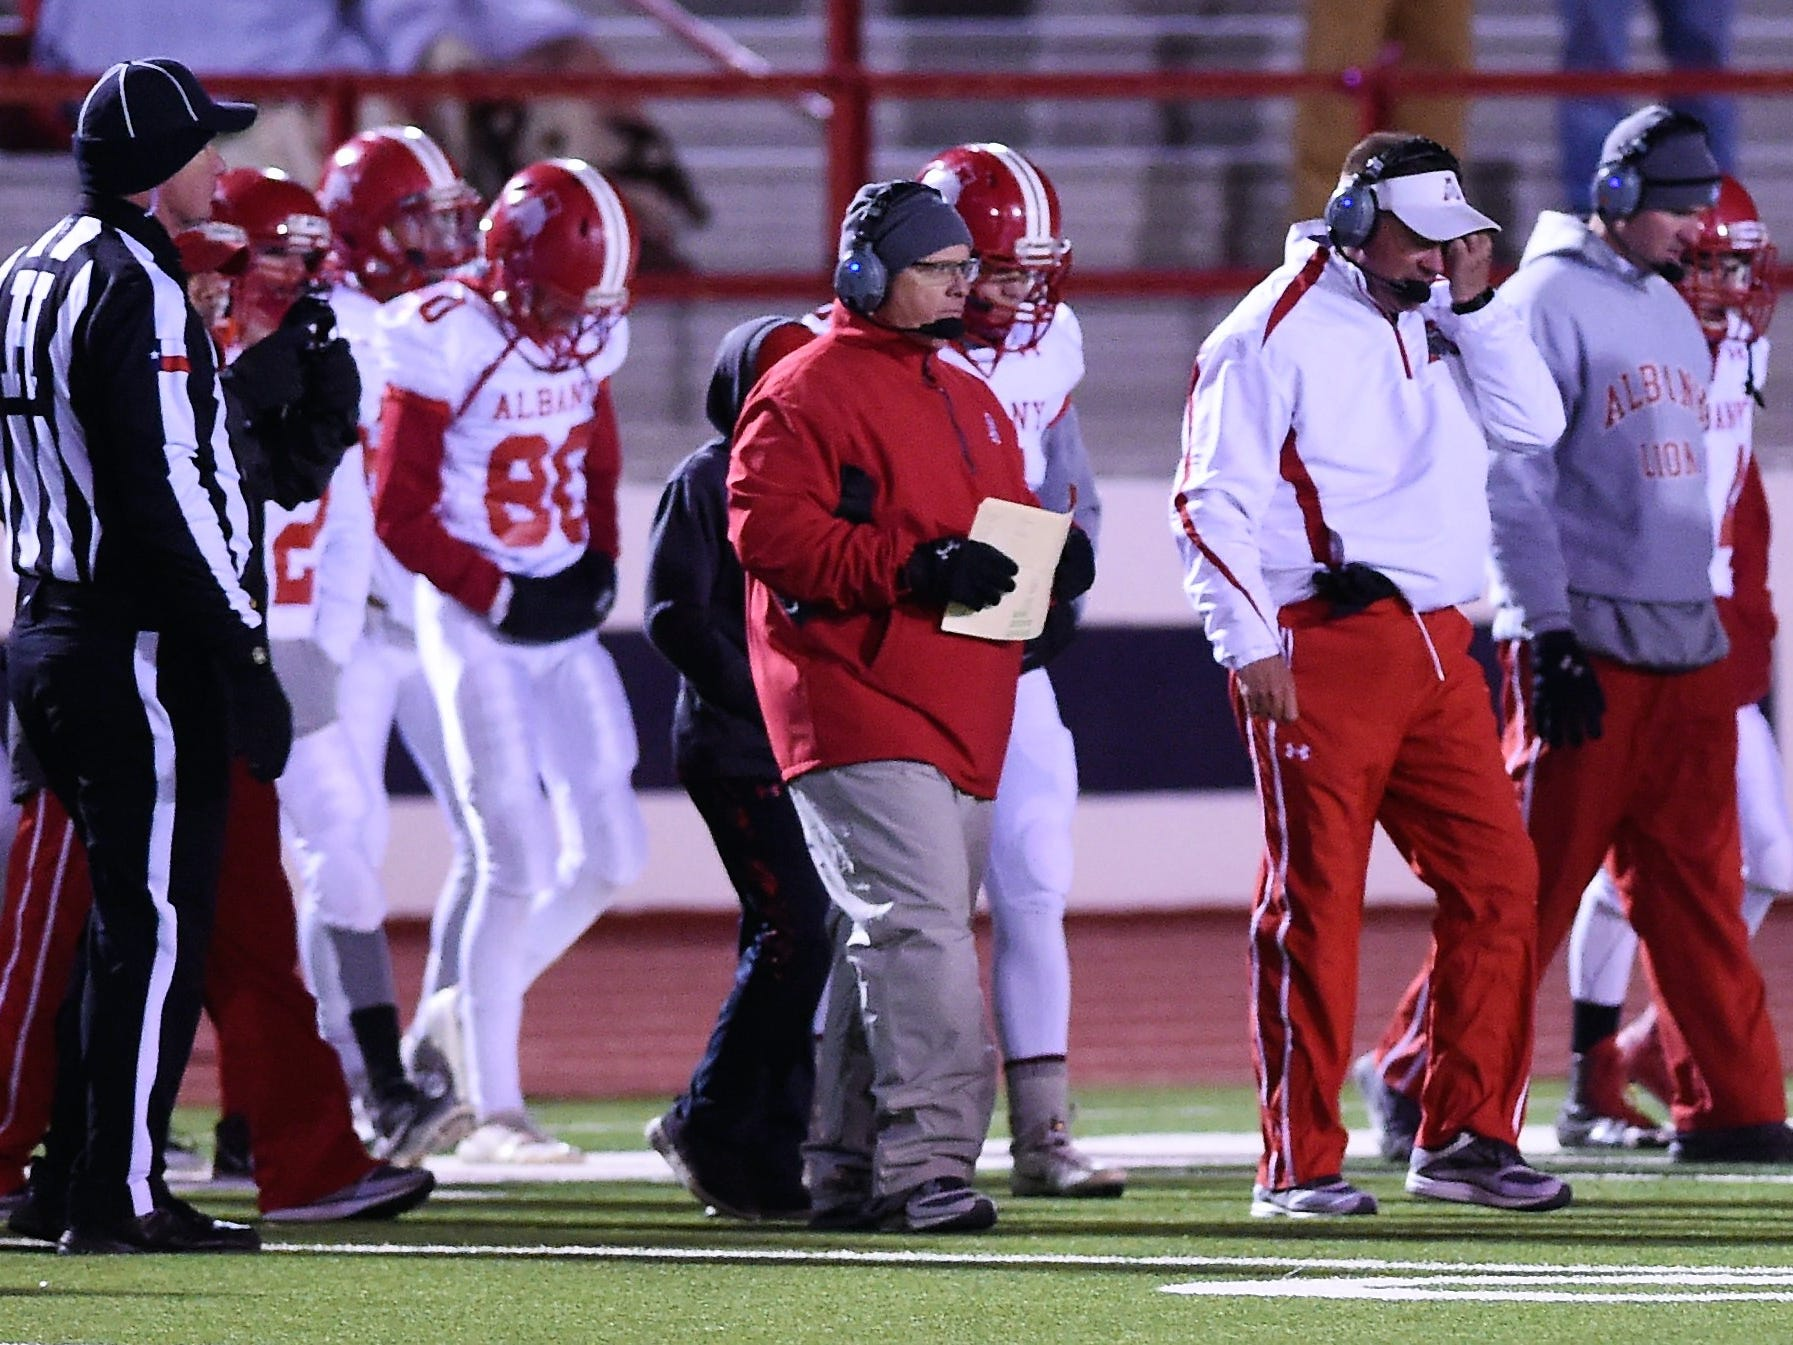 Albany coach Denney Faith goes out to the field during a timeout against Gruver in the Class 2A Division II state semifinal at Sherwood Memorial Bulldog Stadium in Plainview on Thursday, Dec. 13, 2018.